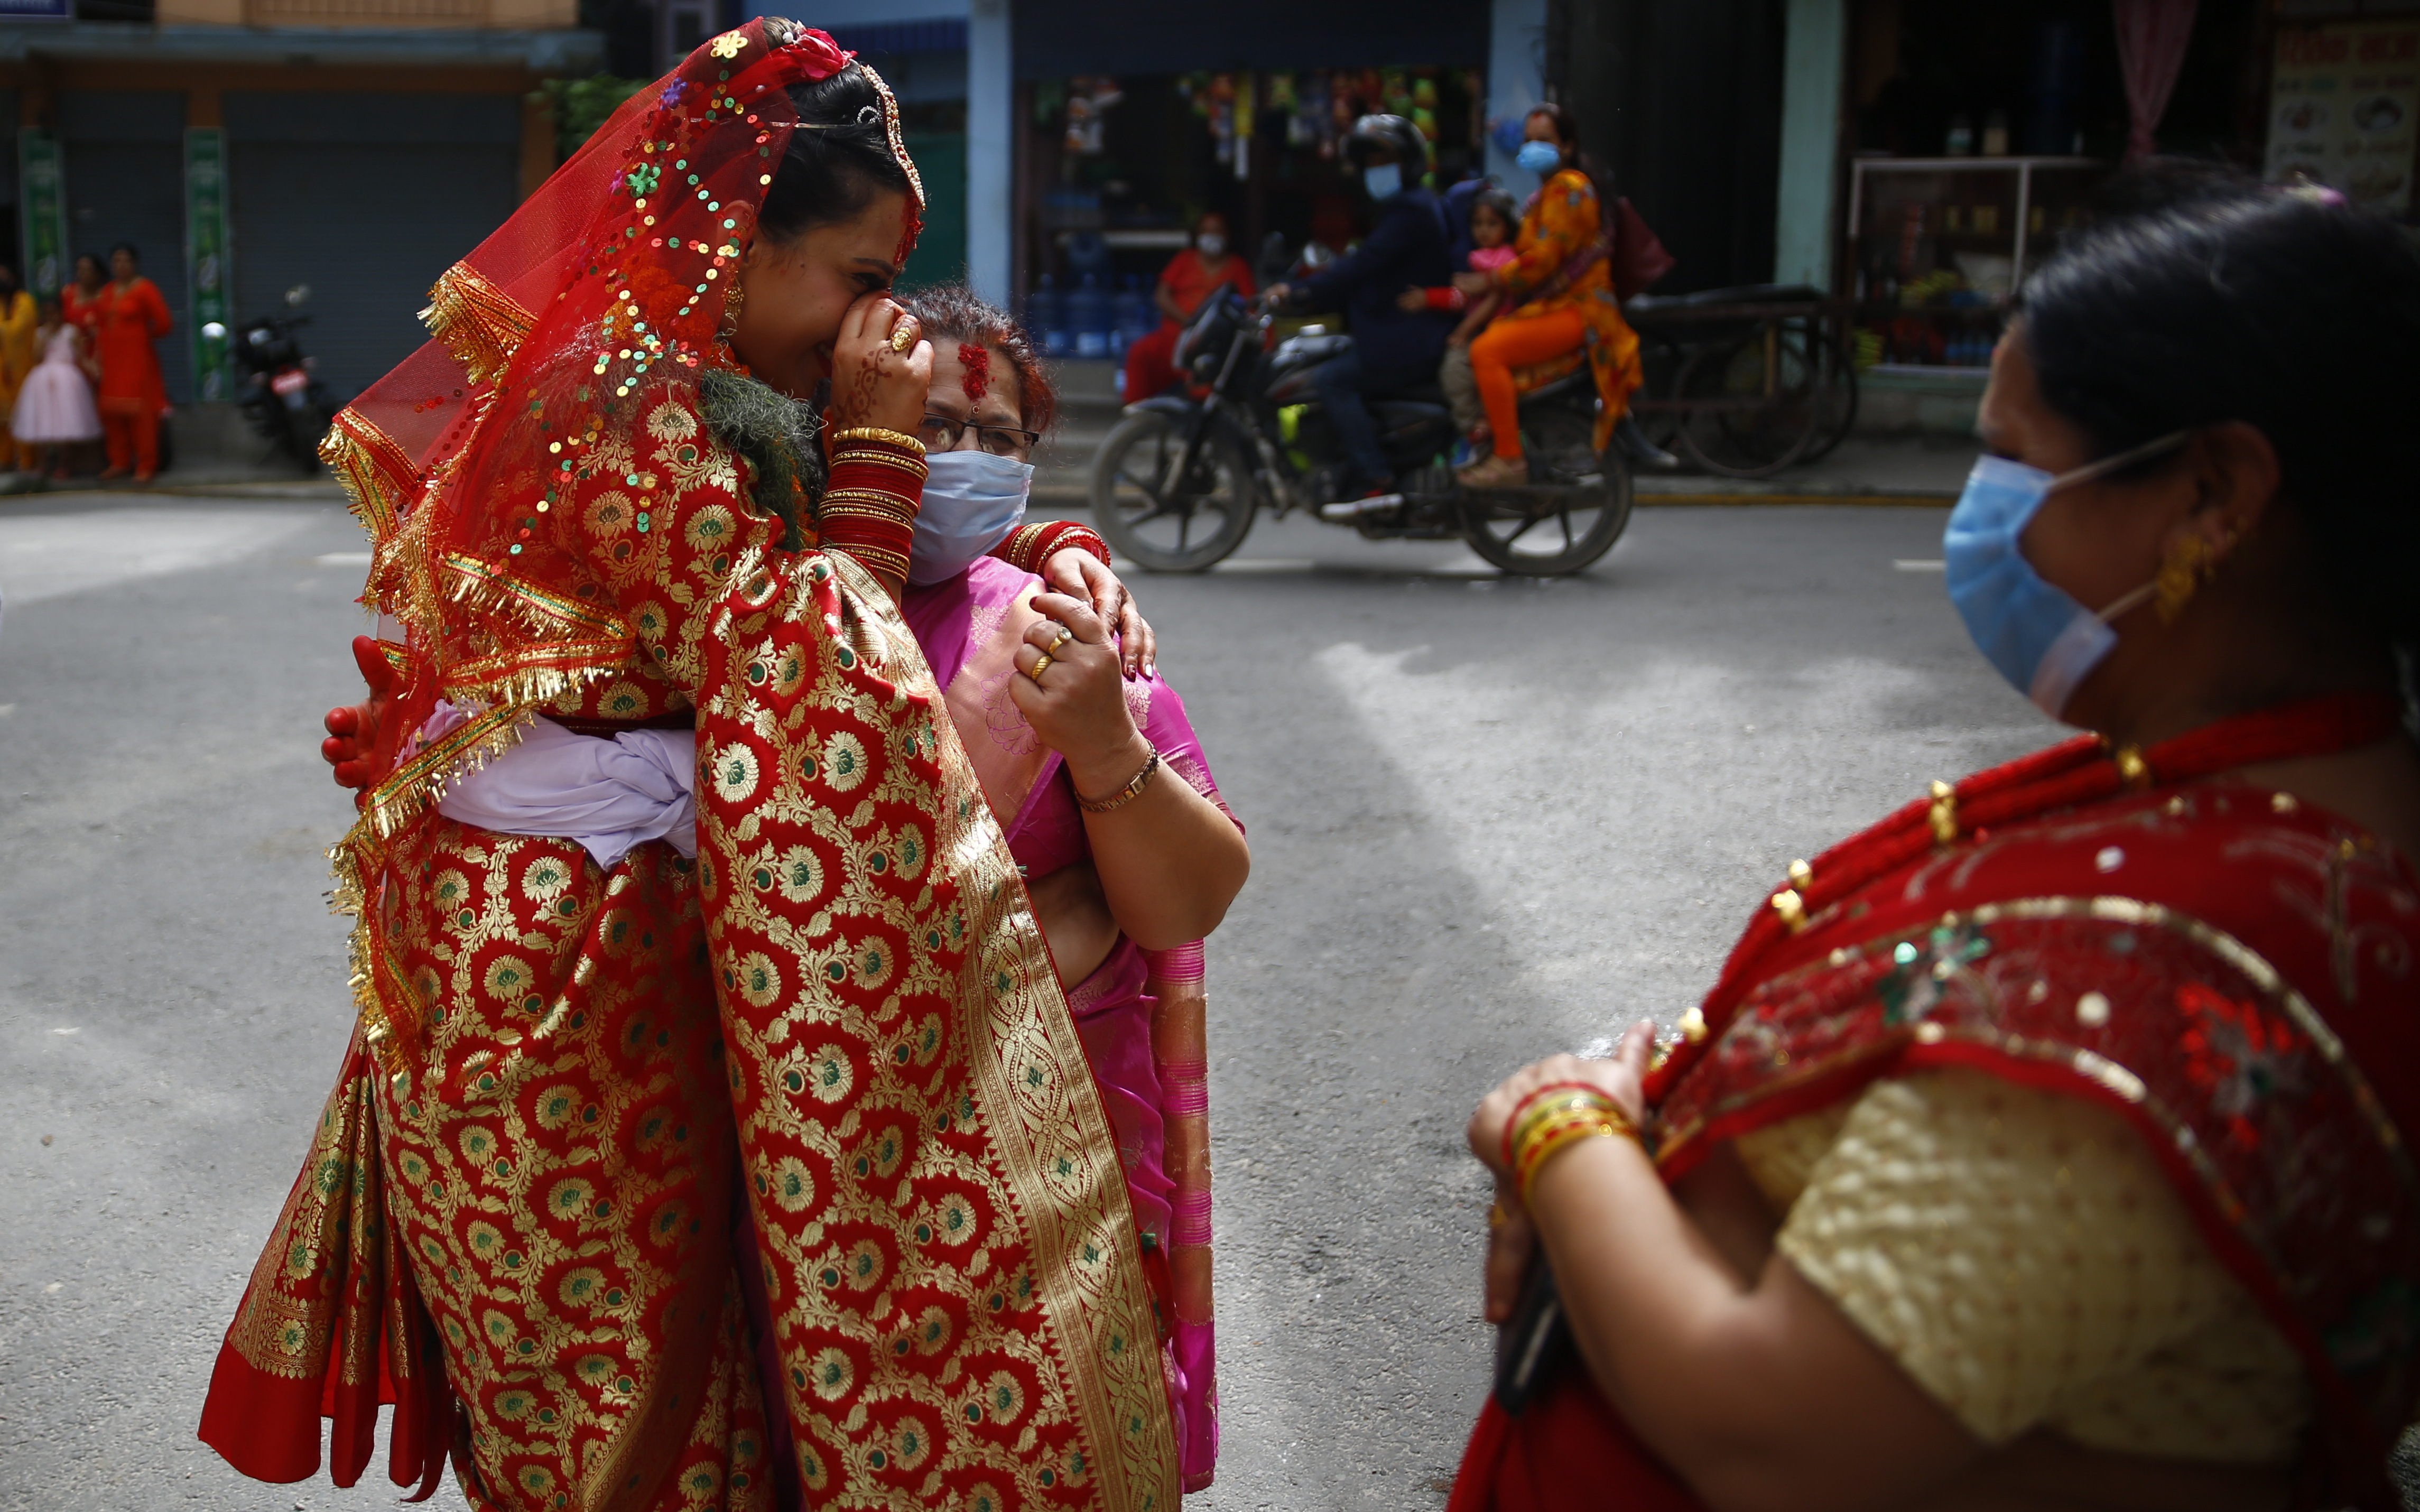 A bride embraces her mother after the wedding ceremony, outside their house, at a time when the government has restricted public gatherings as a precaution against further transmission of COVID-19, in Kathmandu, on Tuesday, August 11, 2020. Photo: Skanda Gautam/THT